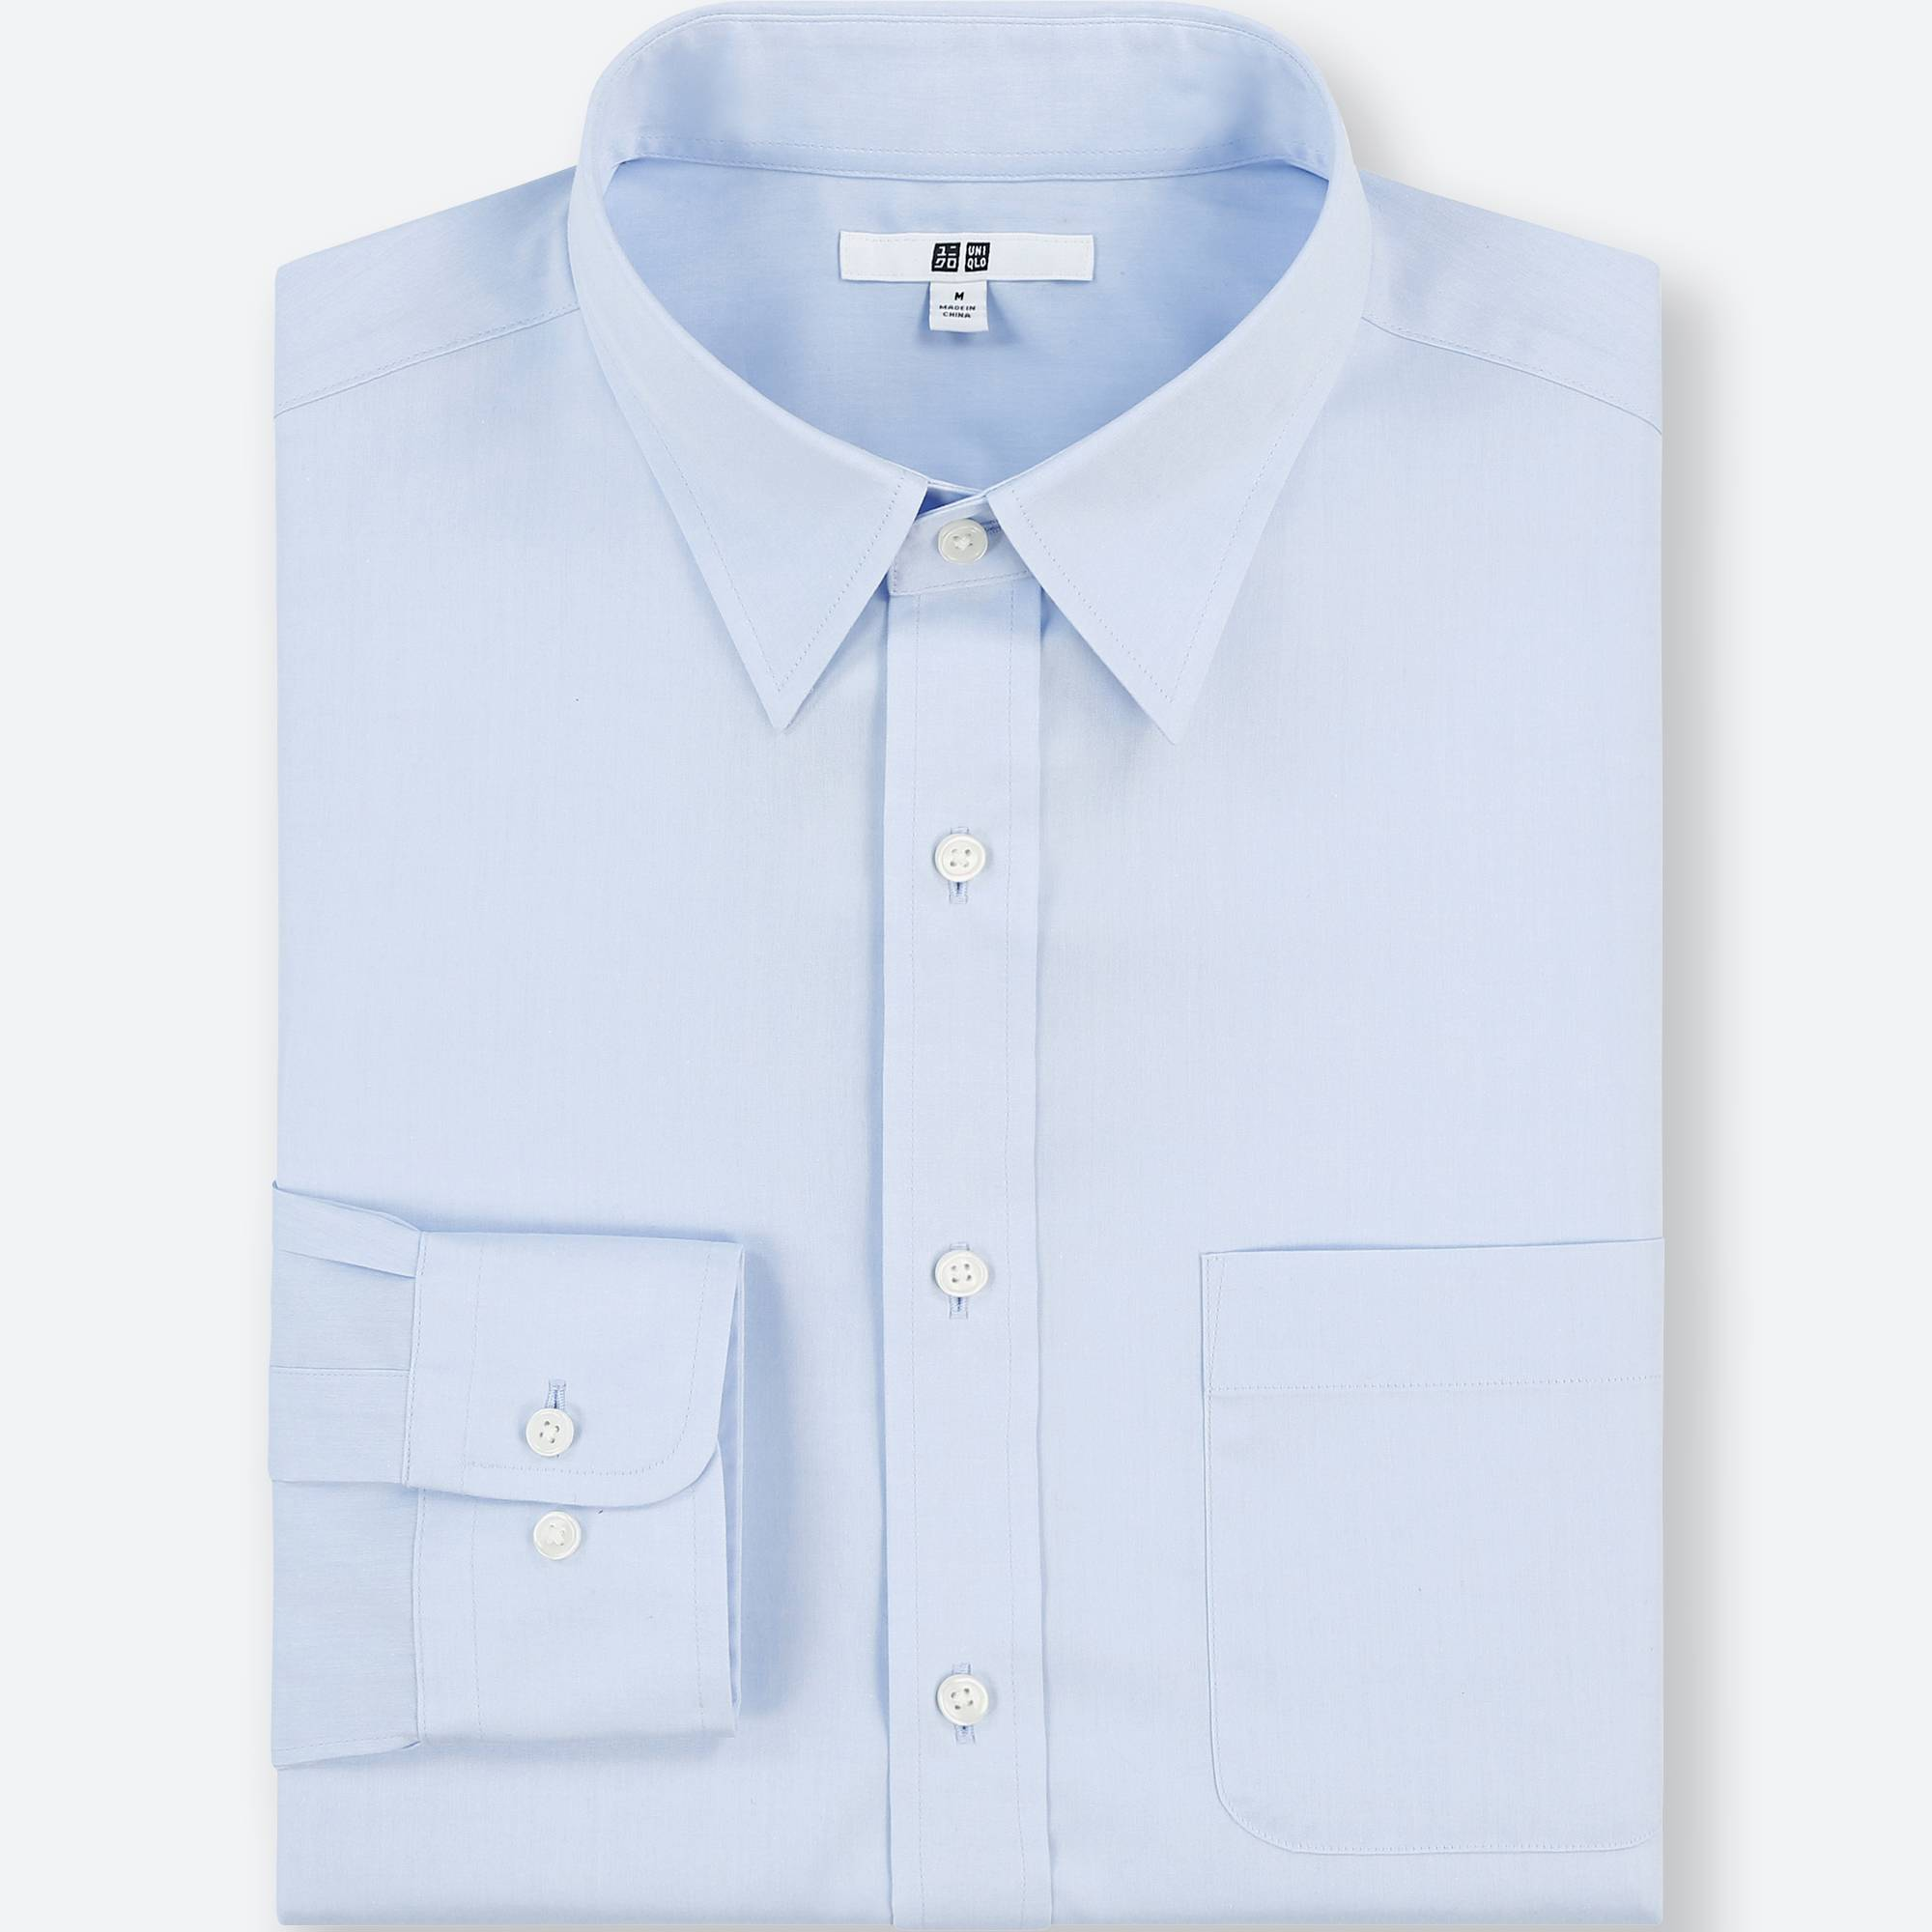 Customized For You Shop Easy Care Shirts Uniqlo Us Uniqlo Us